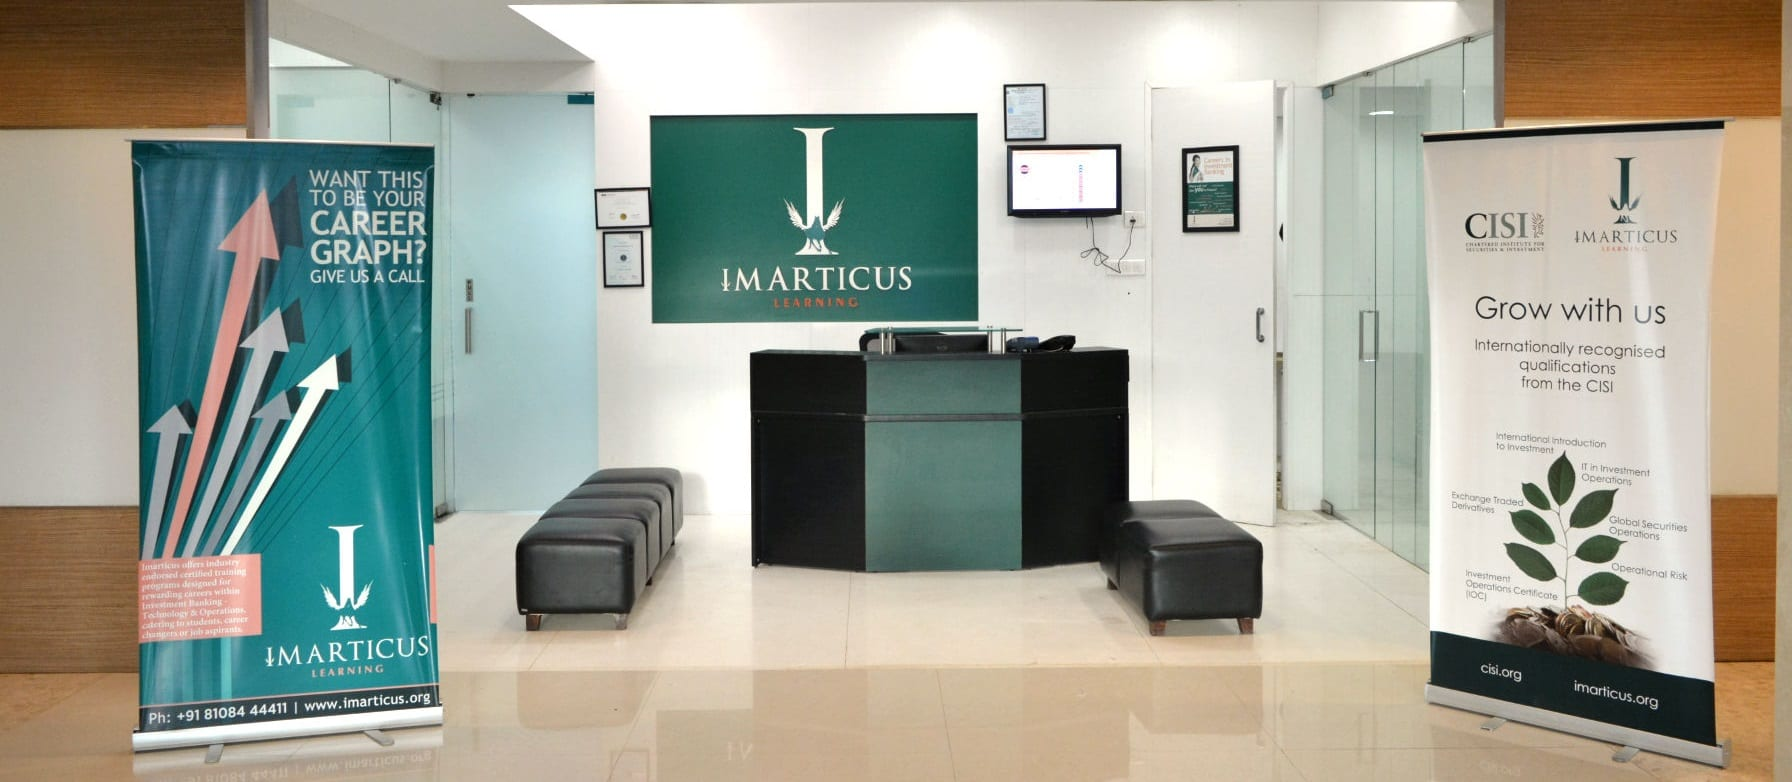 Course The Analytics Programs At Imarticus Equip Candidates With Outstanding Statistical And Quantitative Skills Augmented By Fact Based Tools Software